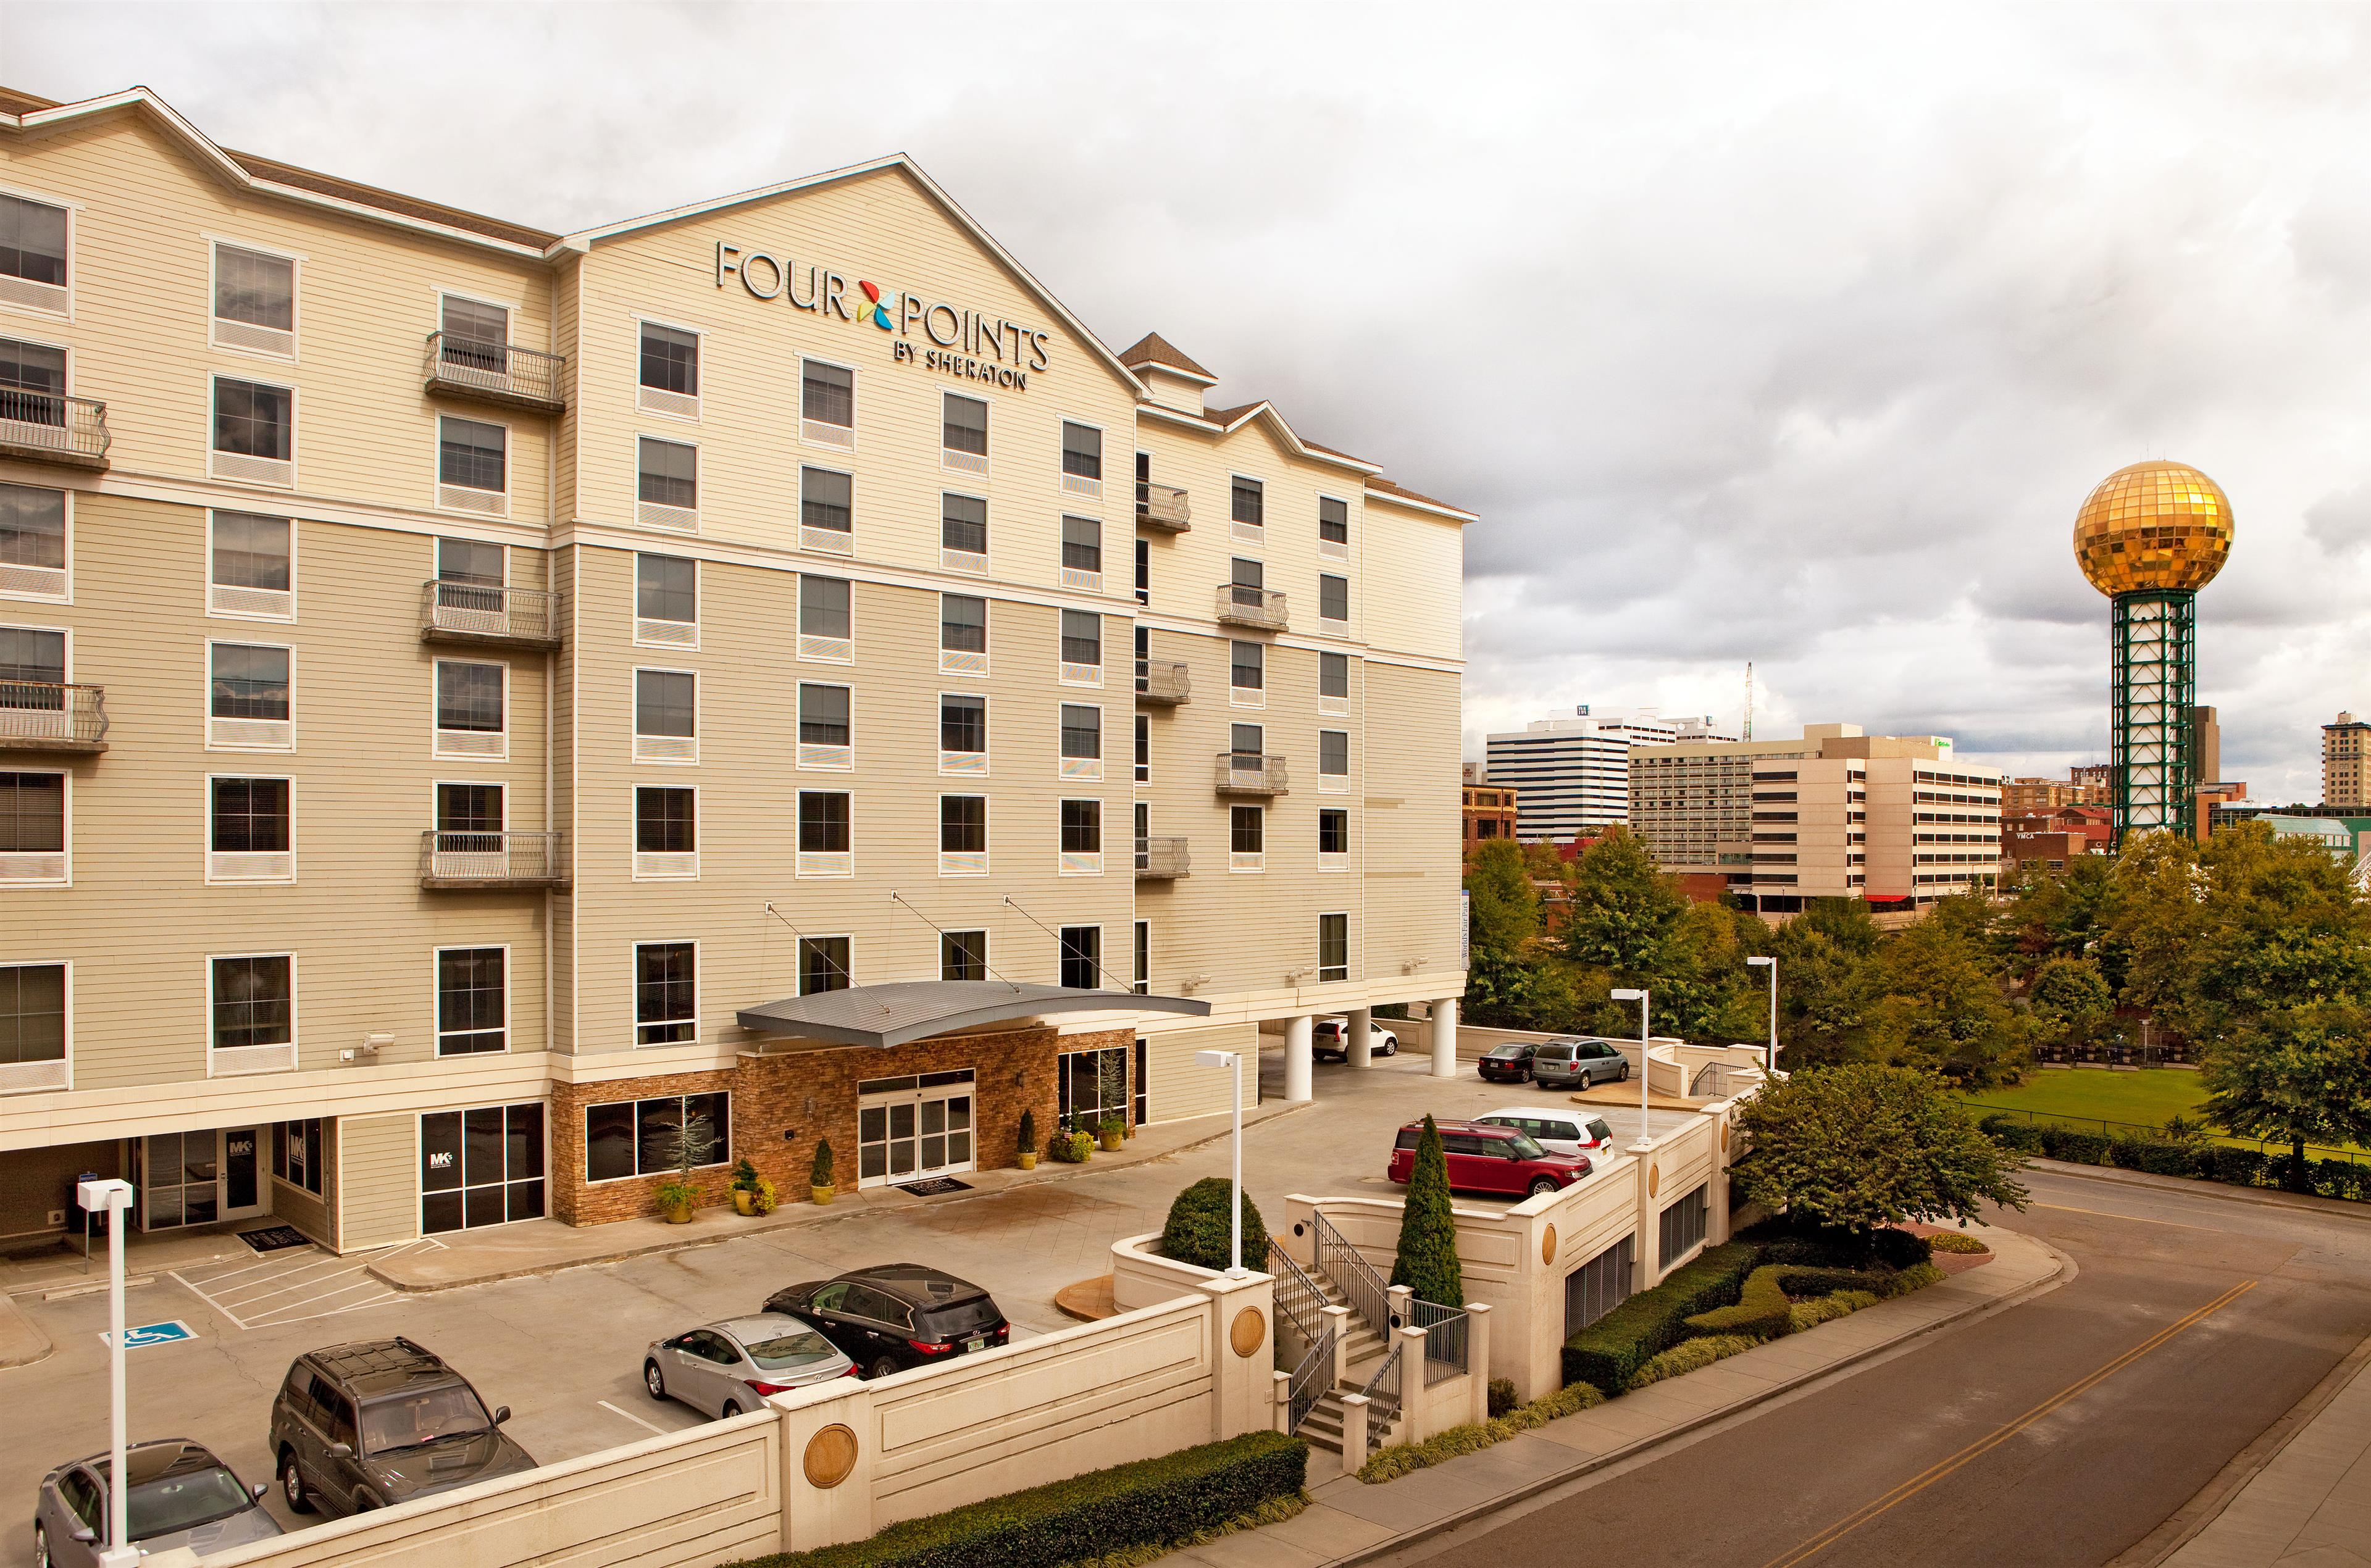 Four Points by Sheraton Knoxville Cumberland House Hotel image 1